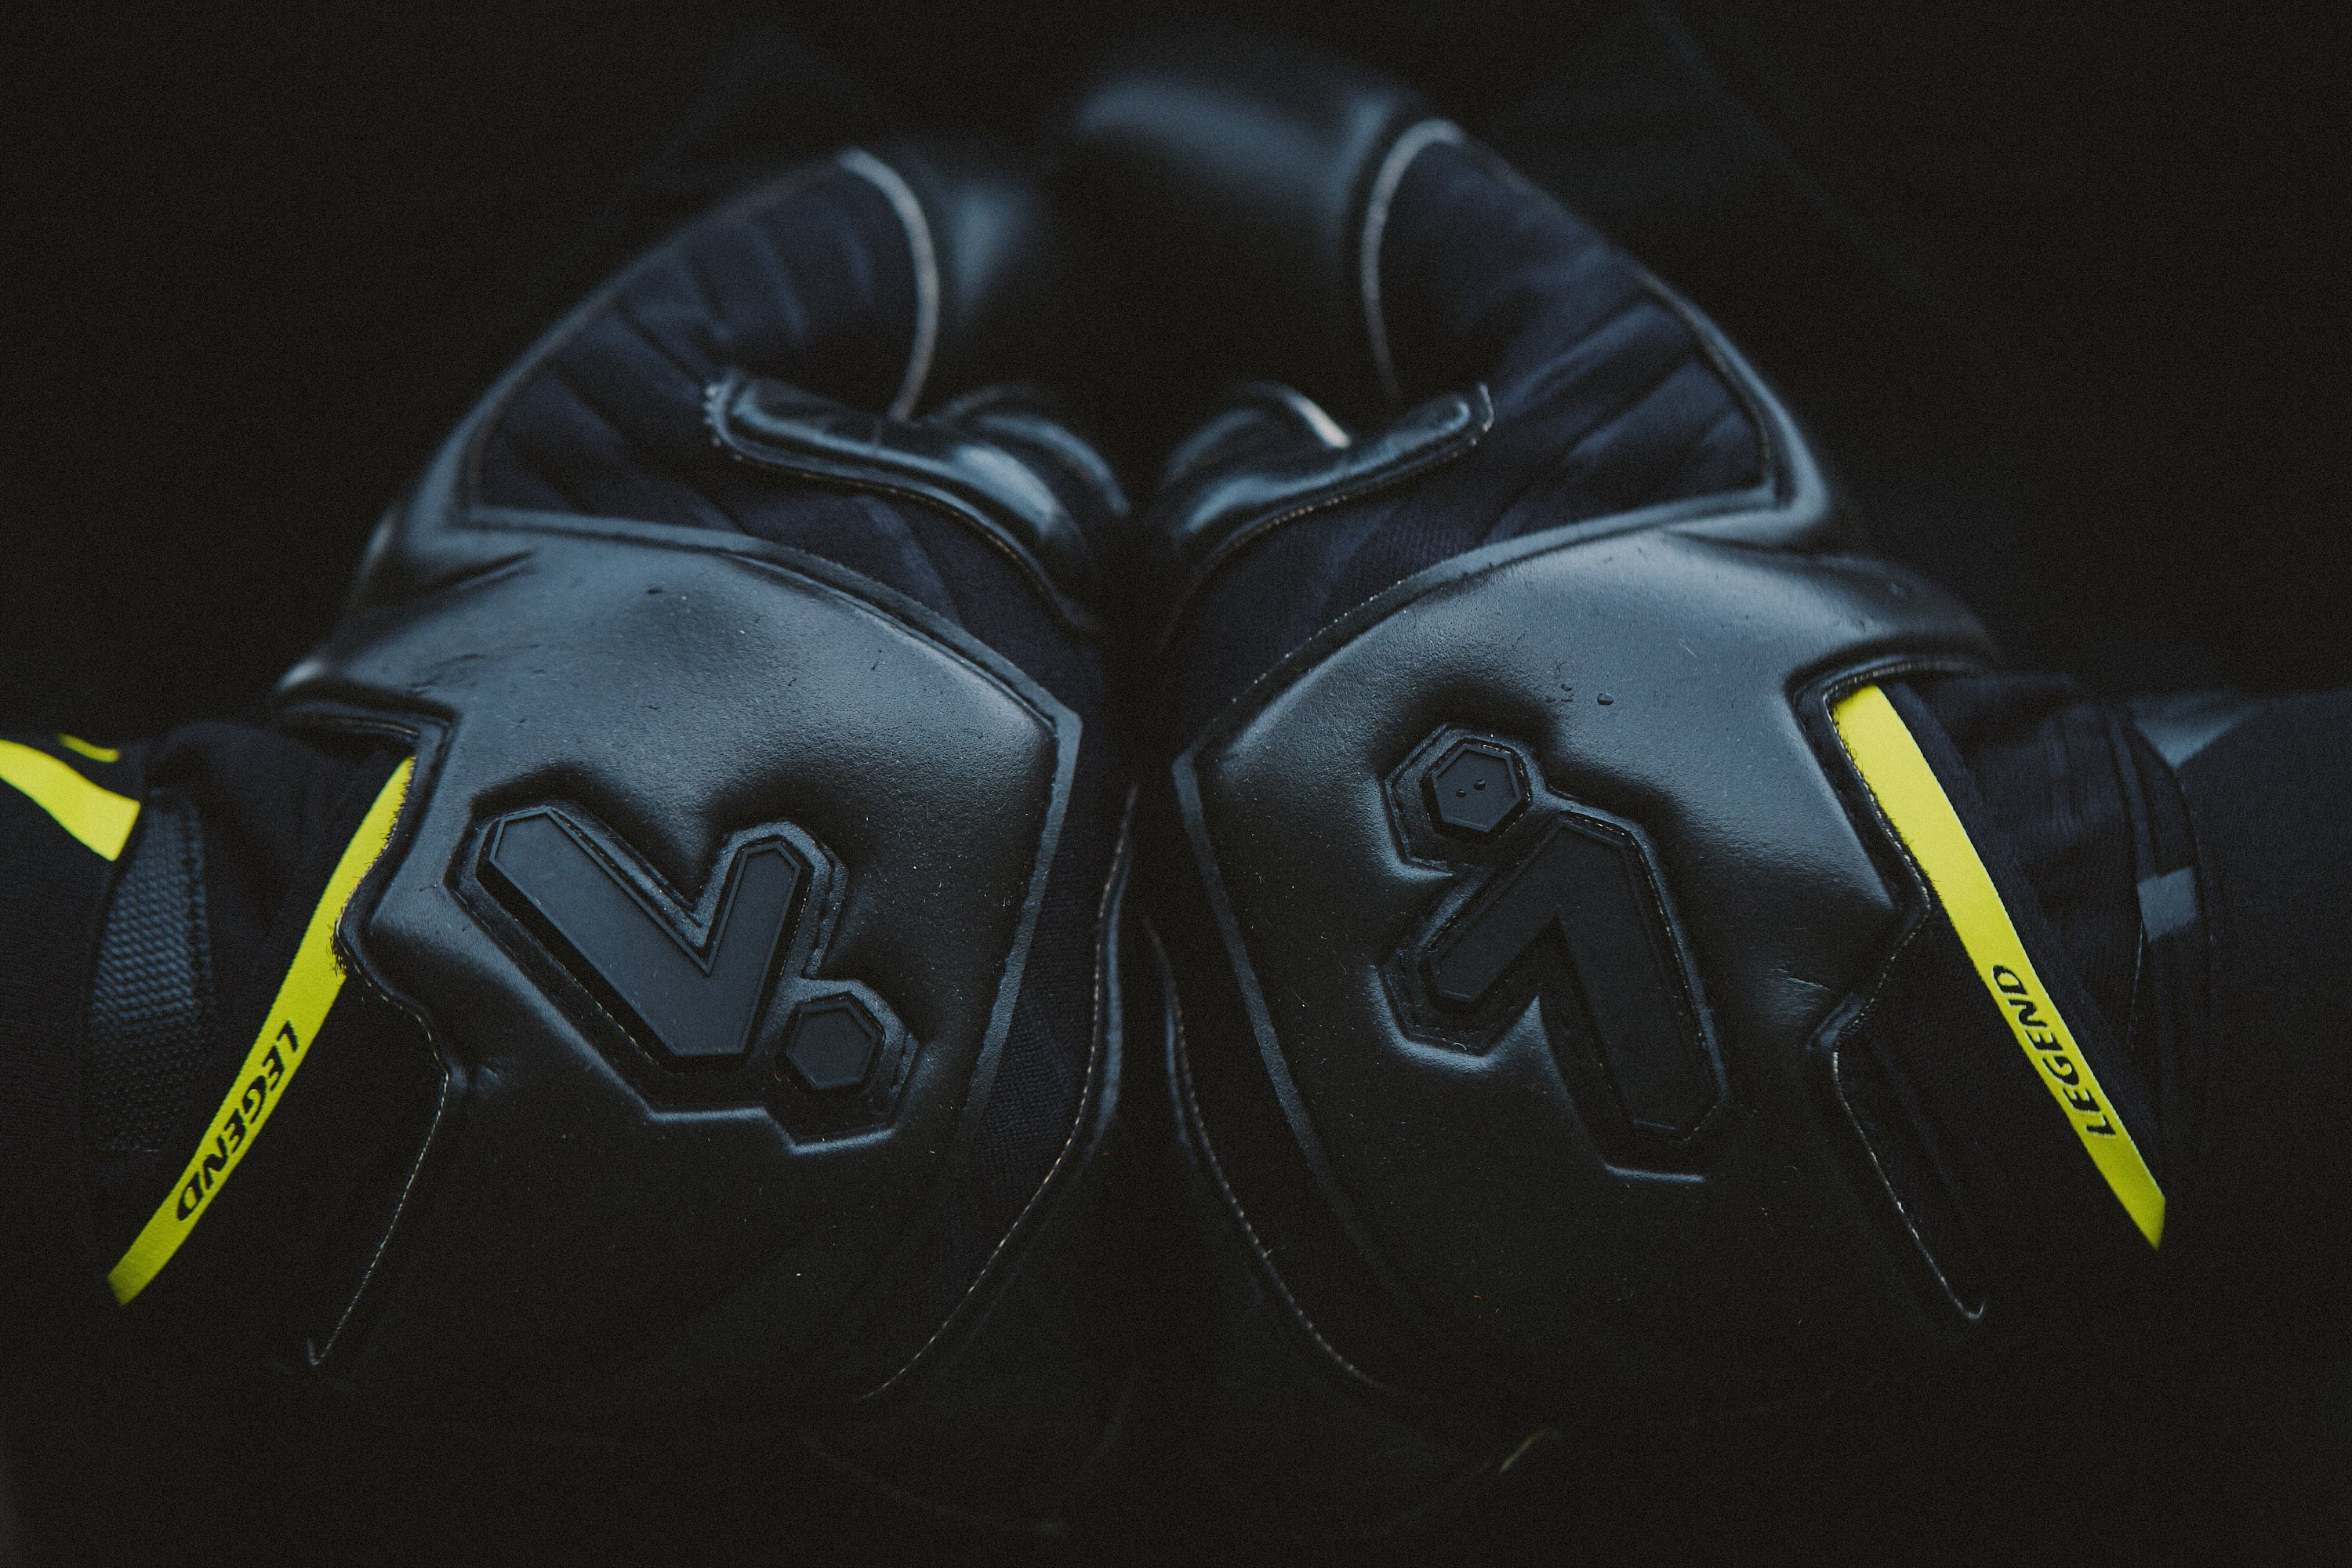 Despite some inevitable latex degradation, goalkeeper gloves will continue to function.